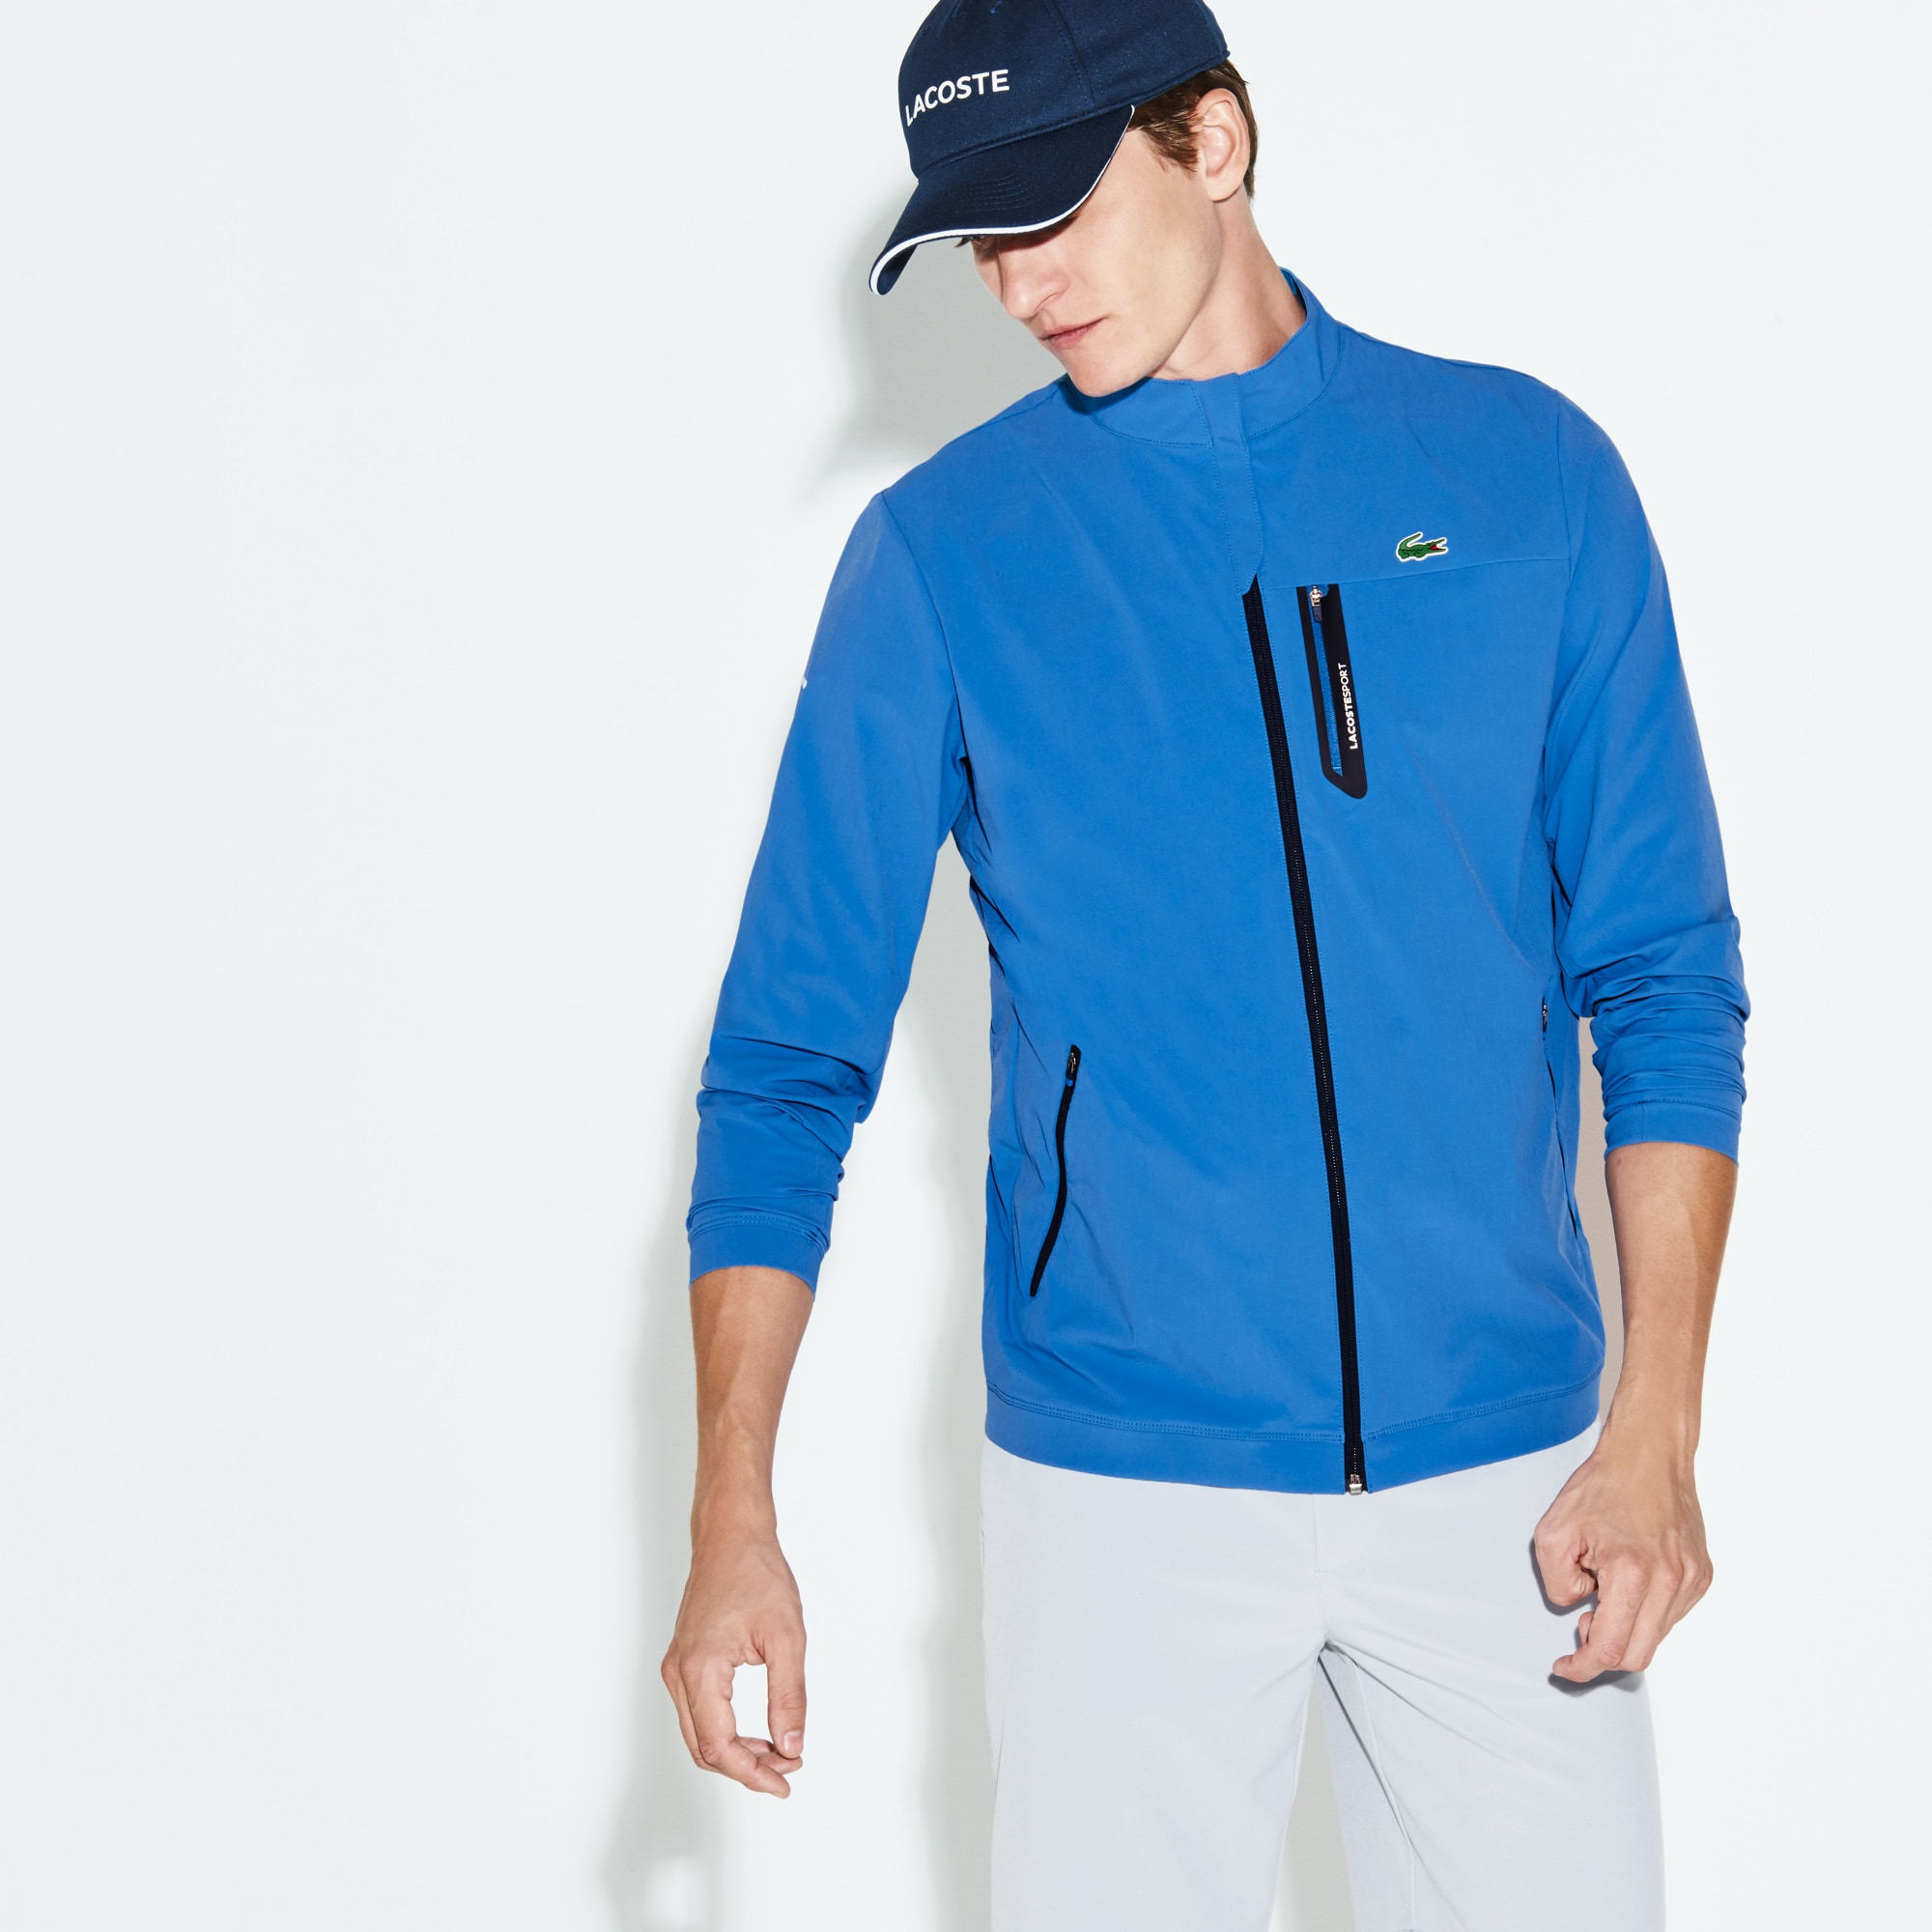 Men's SPORT Technical Zip Golf Jacket